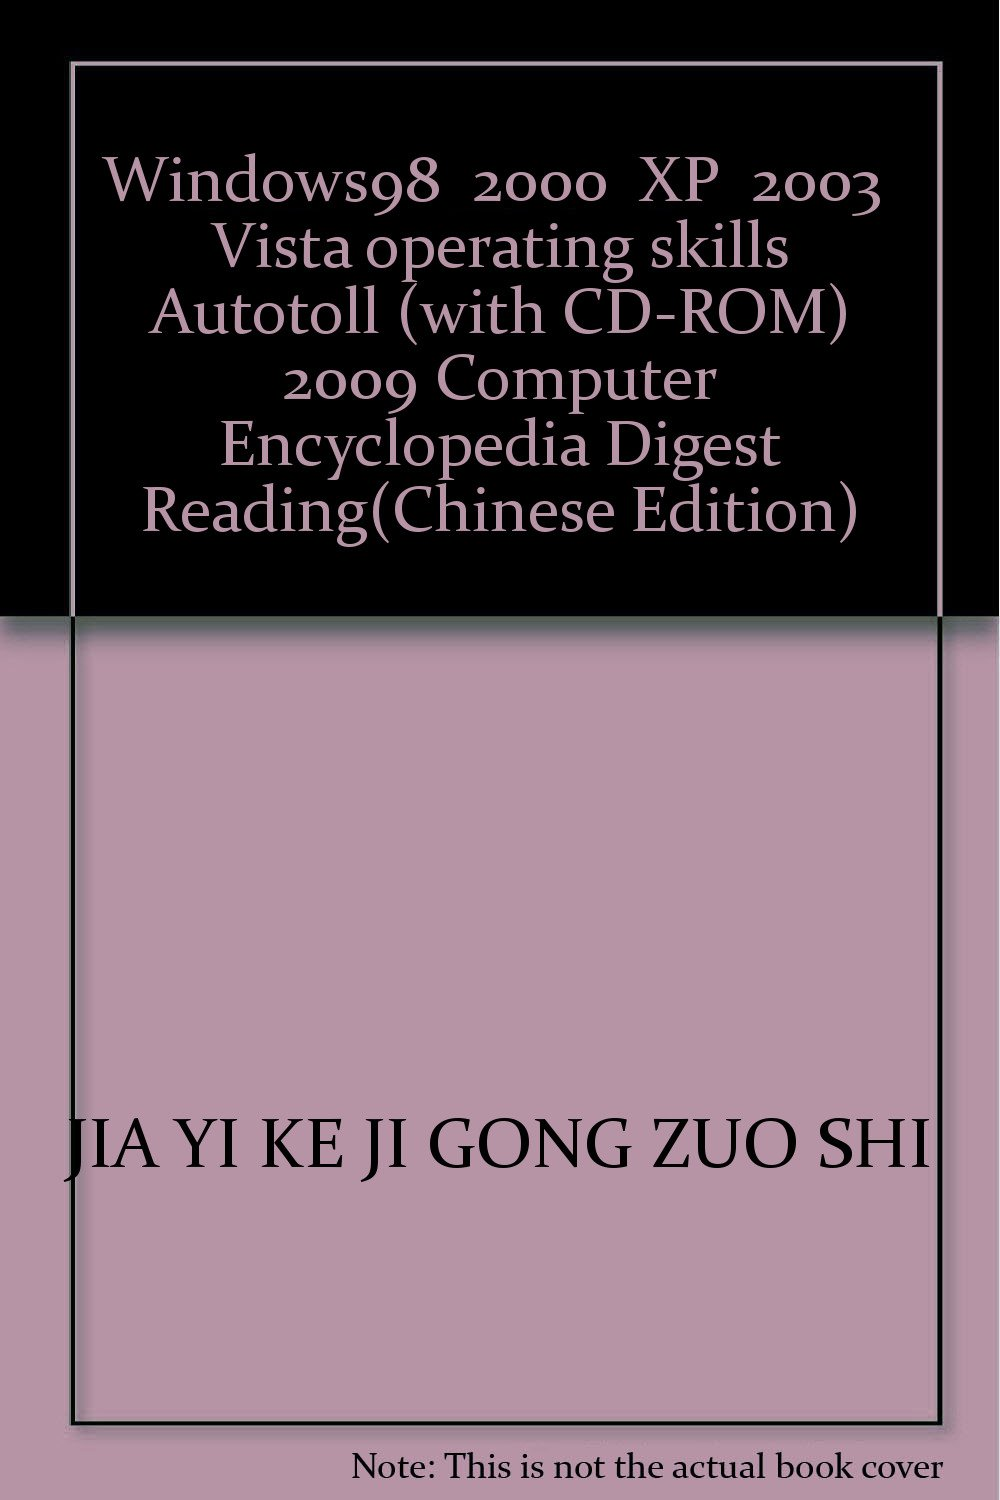 Windows98 \ 2000 \ XP \ 2003 \ Vista operating skills Autotoll (with CD-ROM) 2009 Computer Encyclopedia Digest Reading(Chinese Edition) PDF